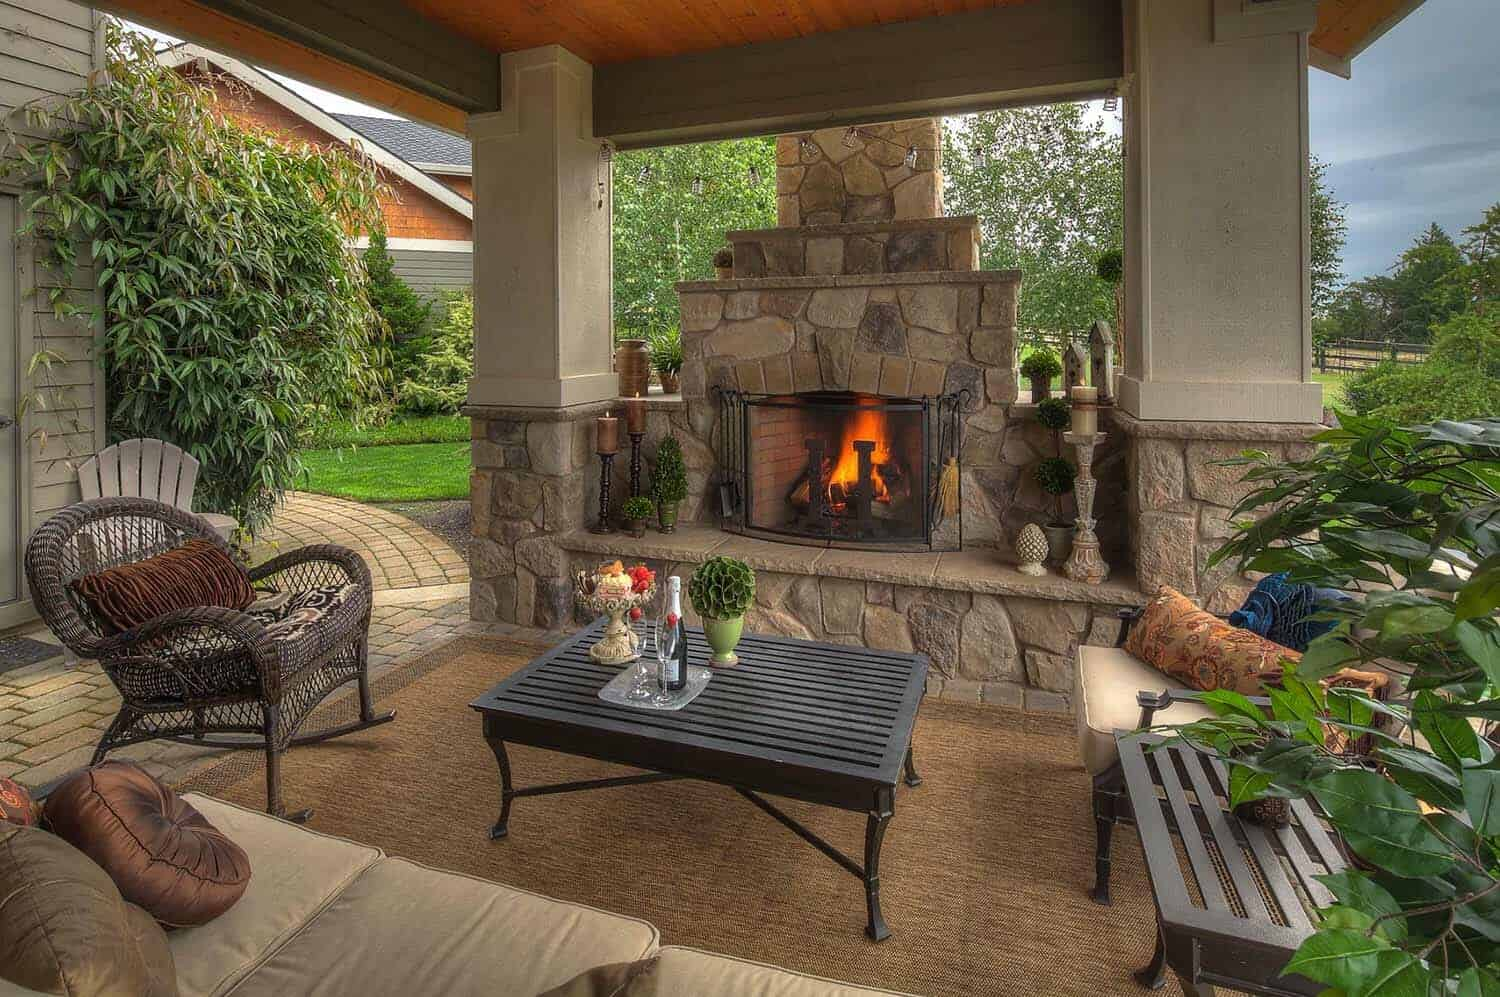 30+ Irresistible outdoor fireplace ideas that will leave ... on Outdoor Kitchen And Fireplace Ideas id=65979